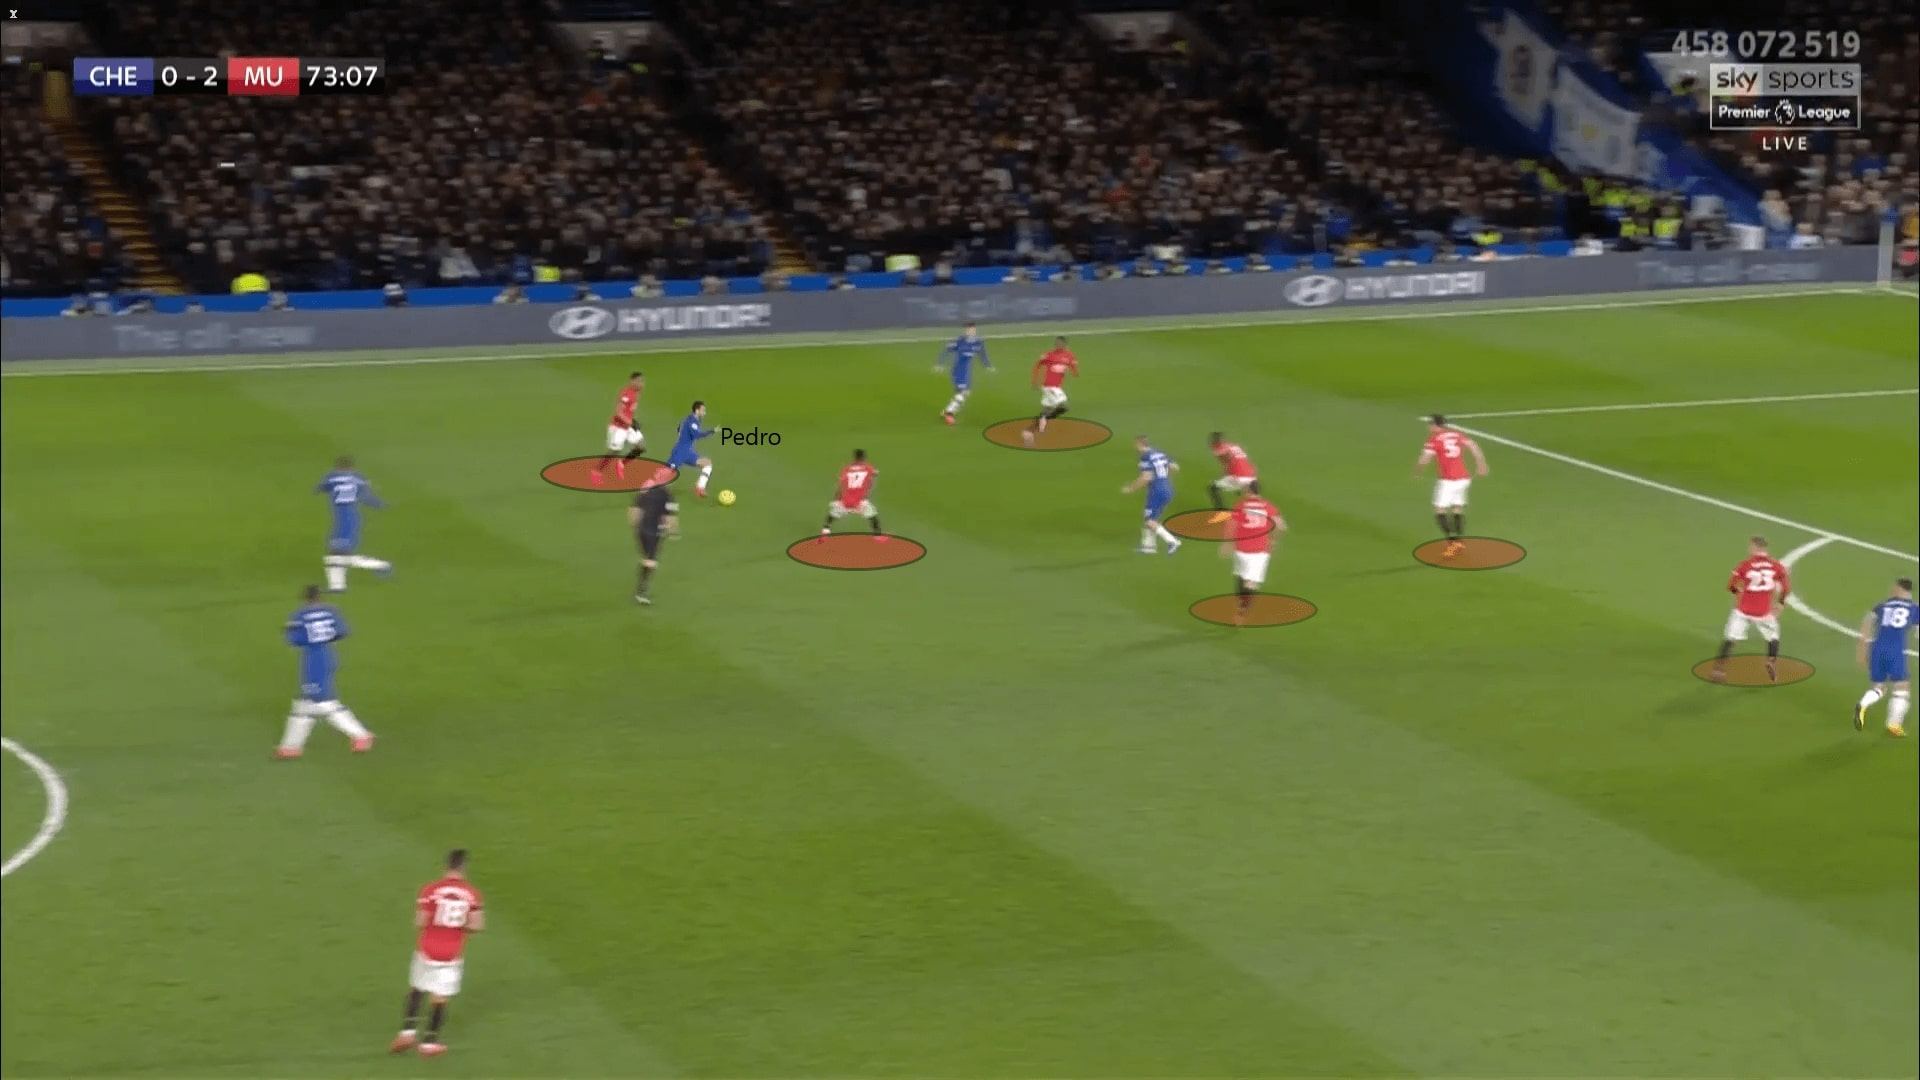 Premier League 2019/20: Chelsea vs Manchester United - tactical analysis tactics